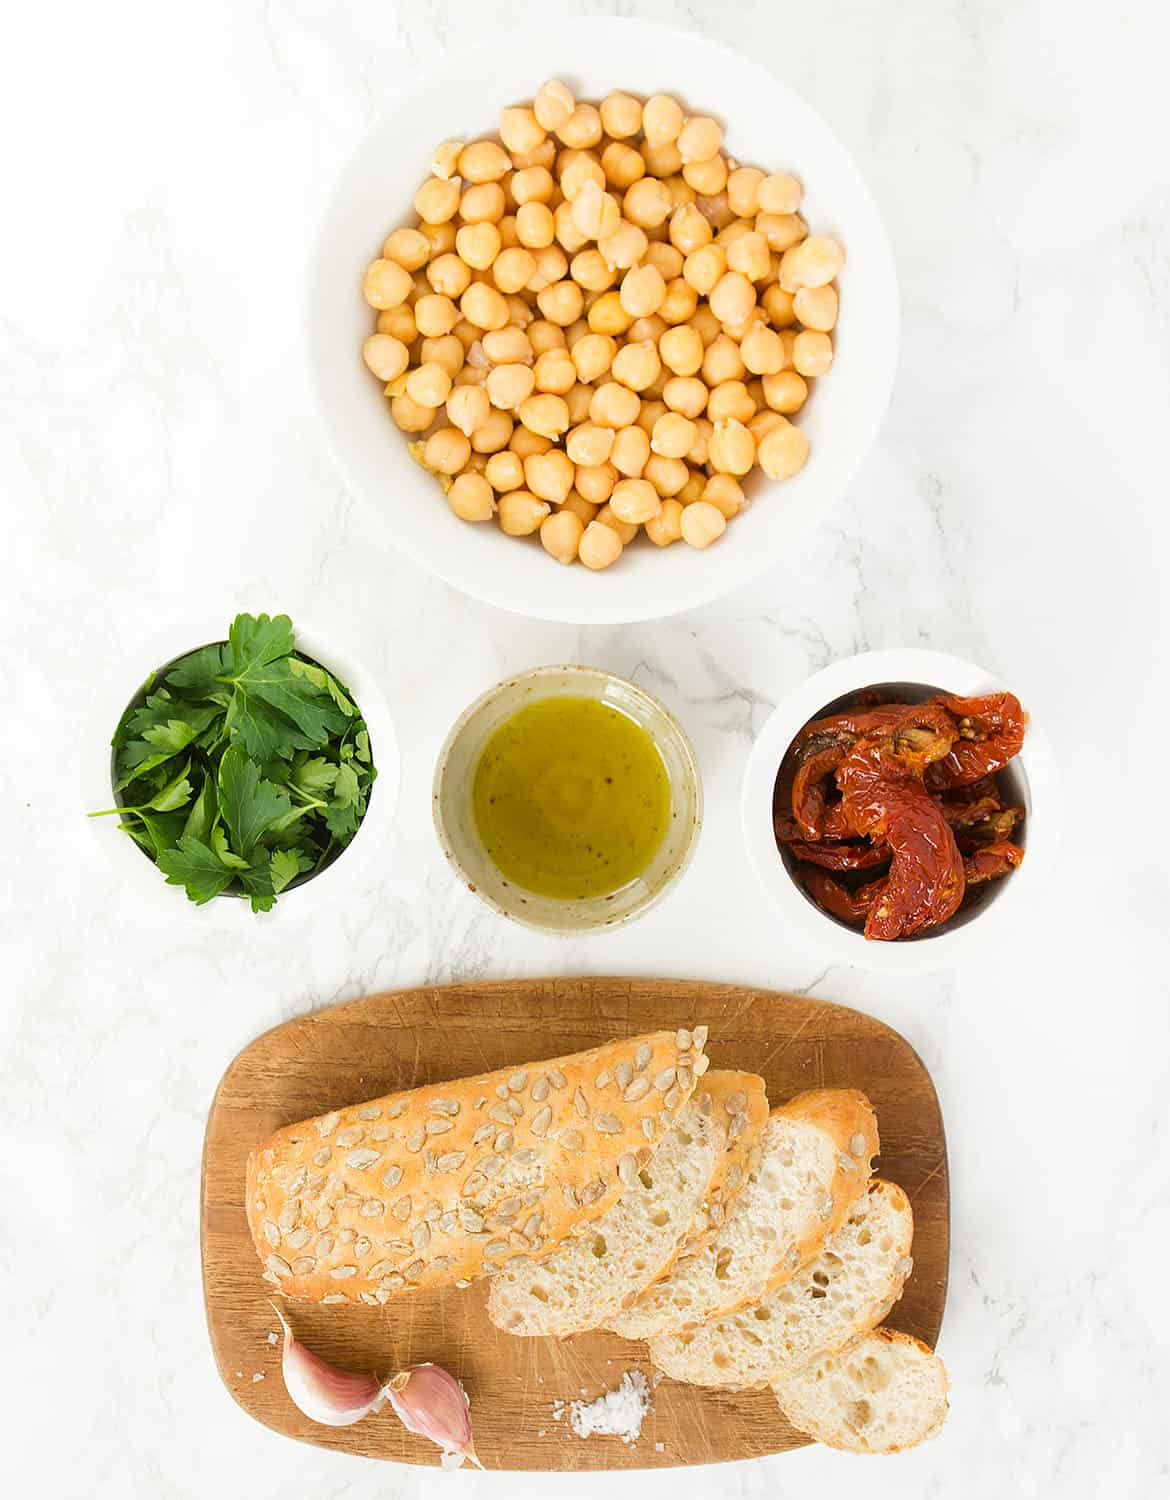 The ingredients for this chickpea bruschetta are arranged over a white background.